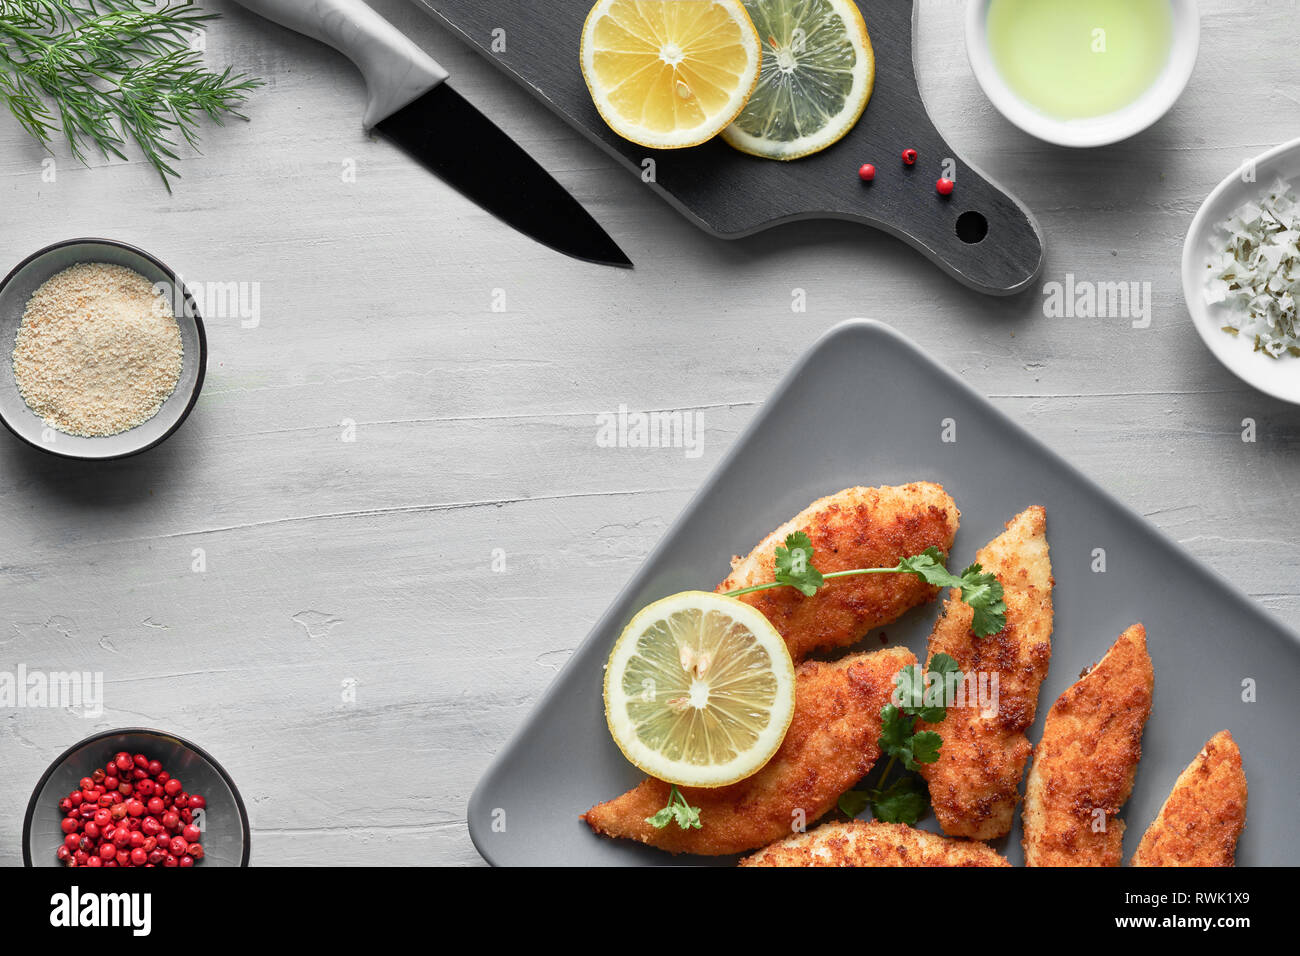 Breaded chicken stripes with breading, cooking oil, salt, pink pepper, dill and lemon, flat lay on light background - Stock Image